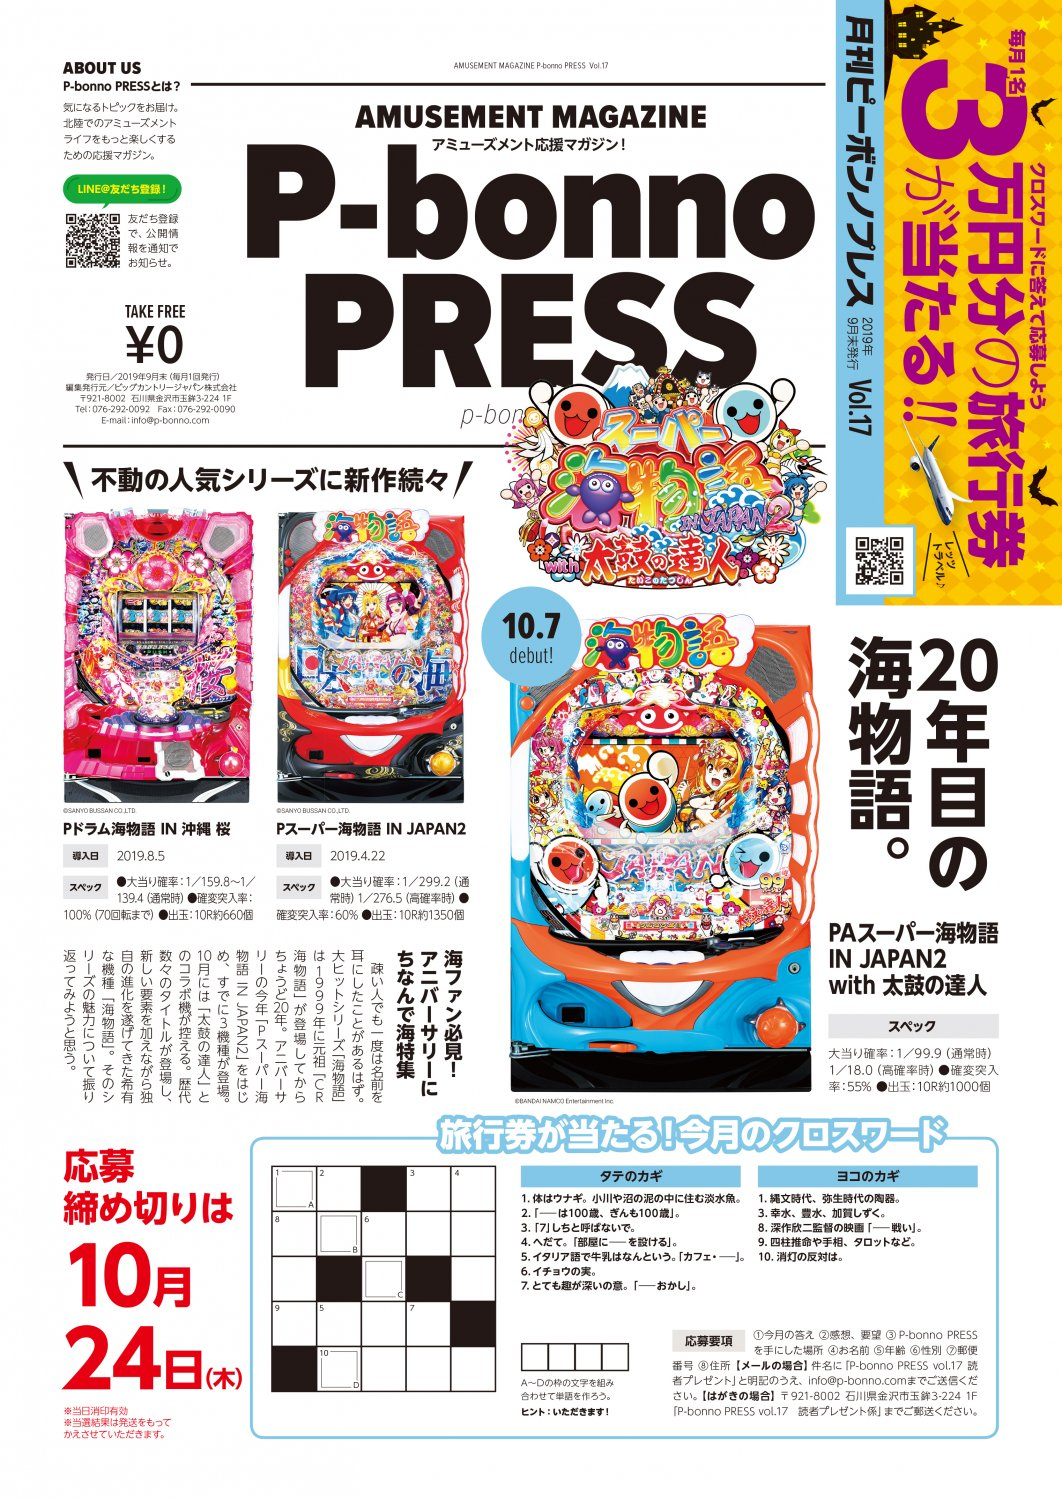 P-bonno PRESS